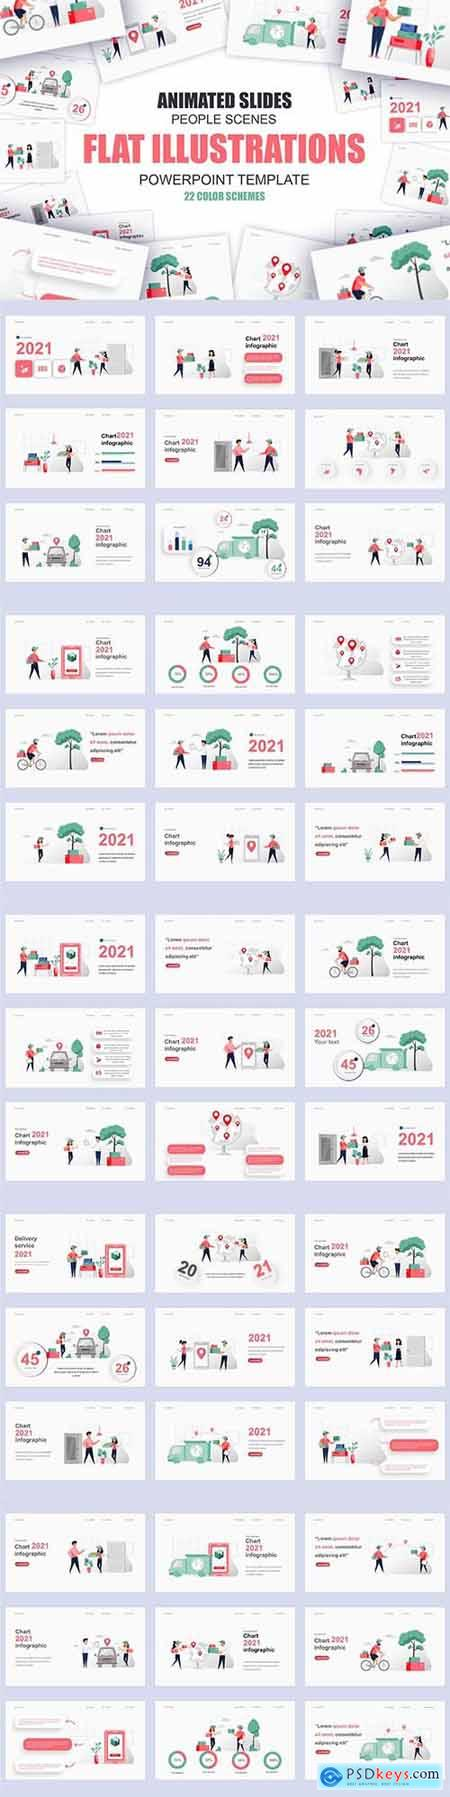 Delivery Illustration Powerpoint Template